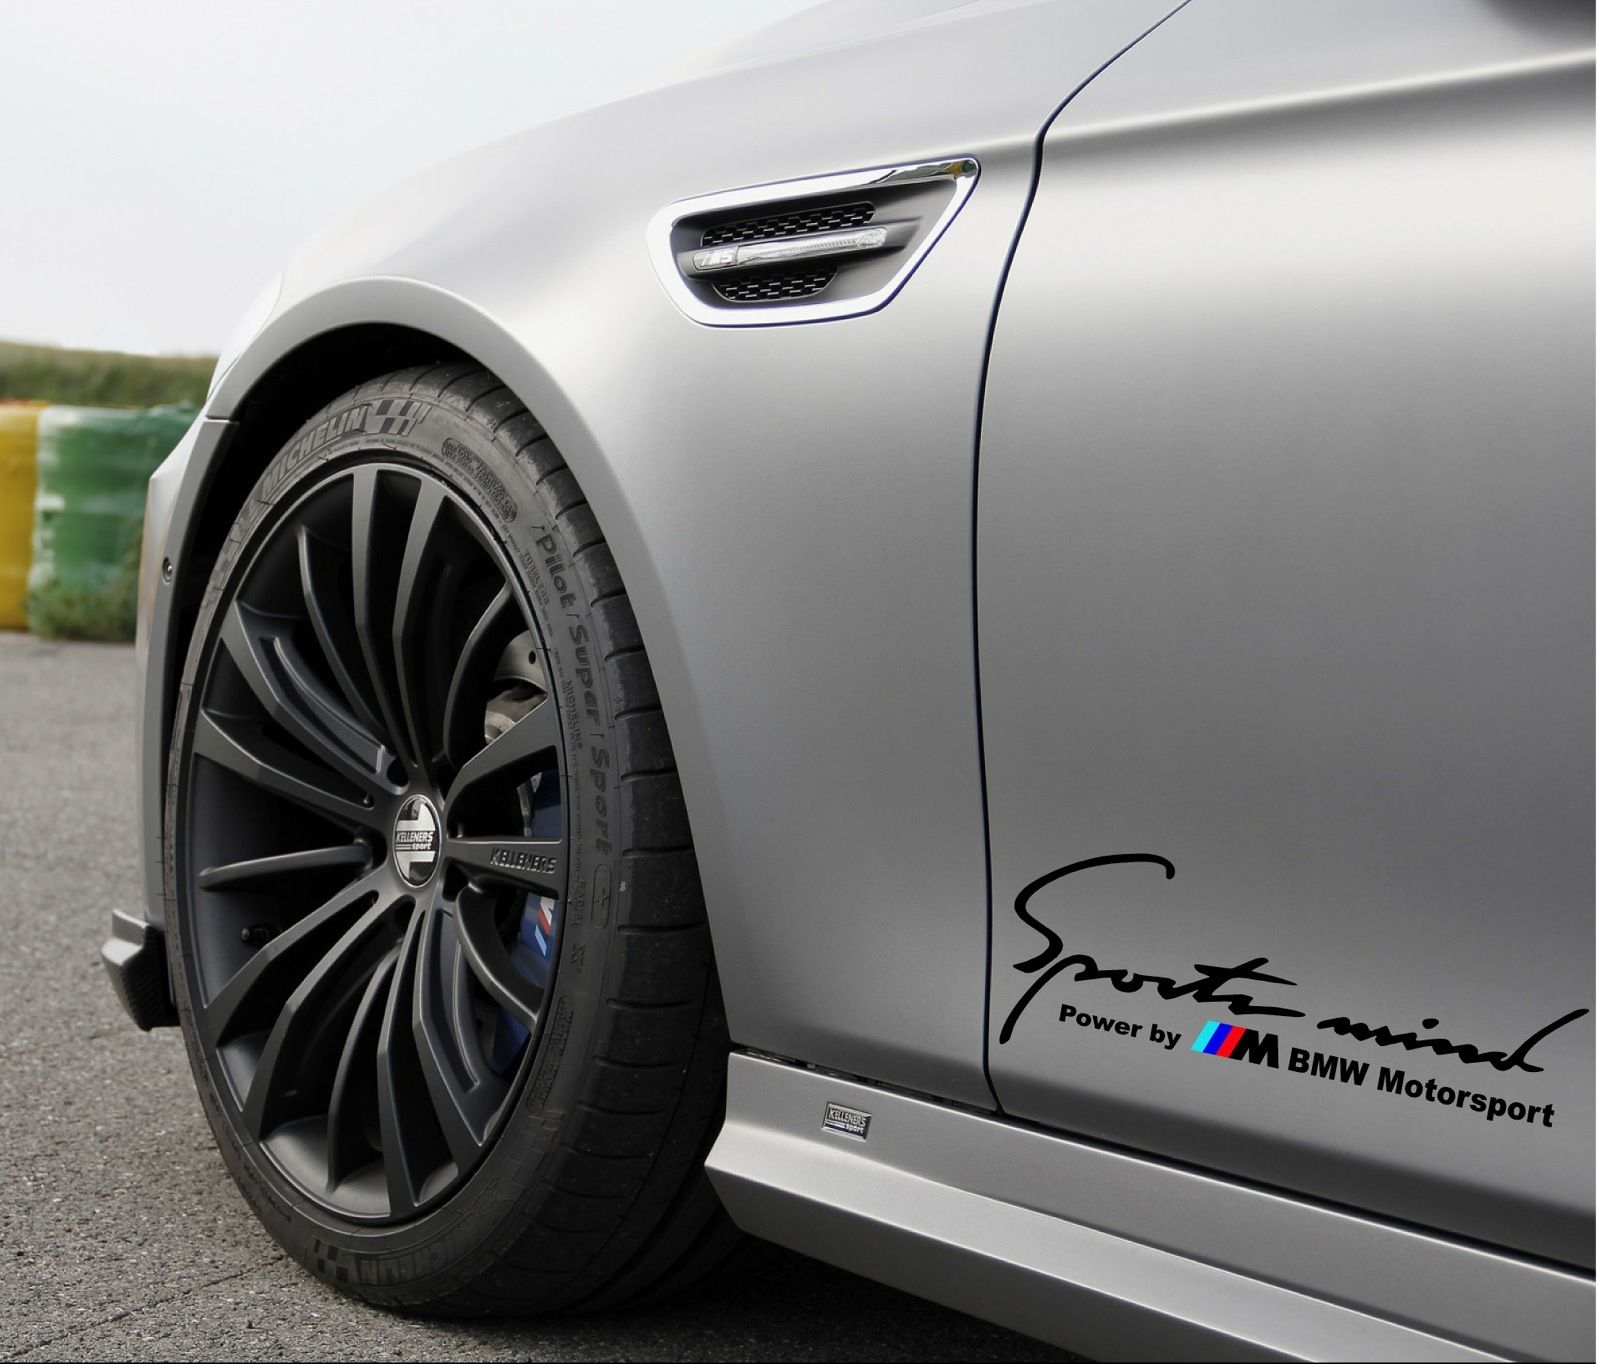 Product Sports Mind Power By M BMW Motorsport M M Decal Sticker - Sport decal stickers for cars